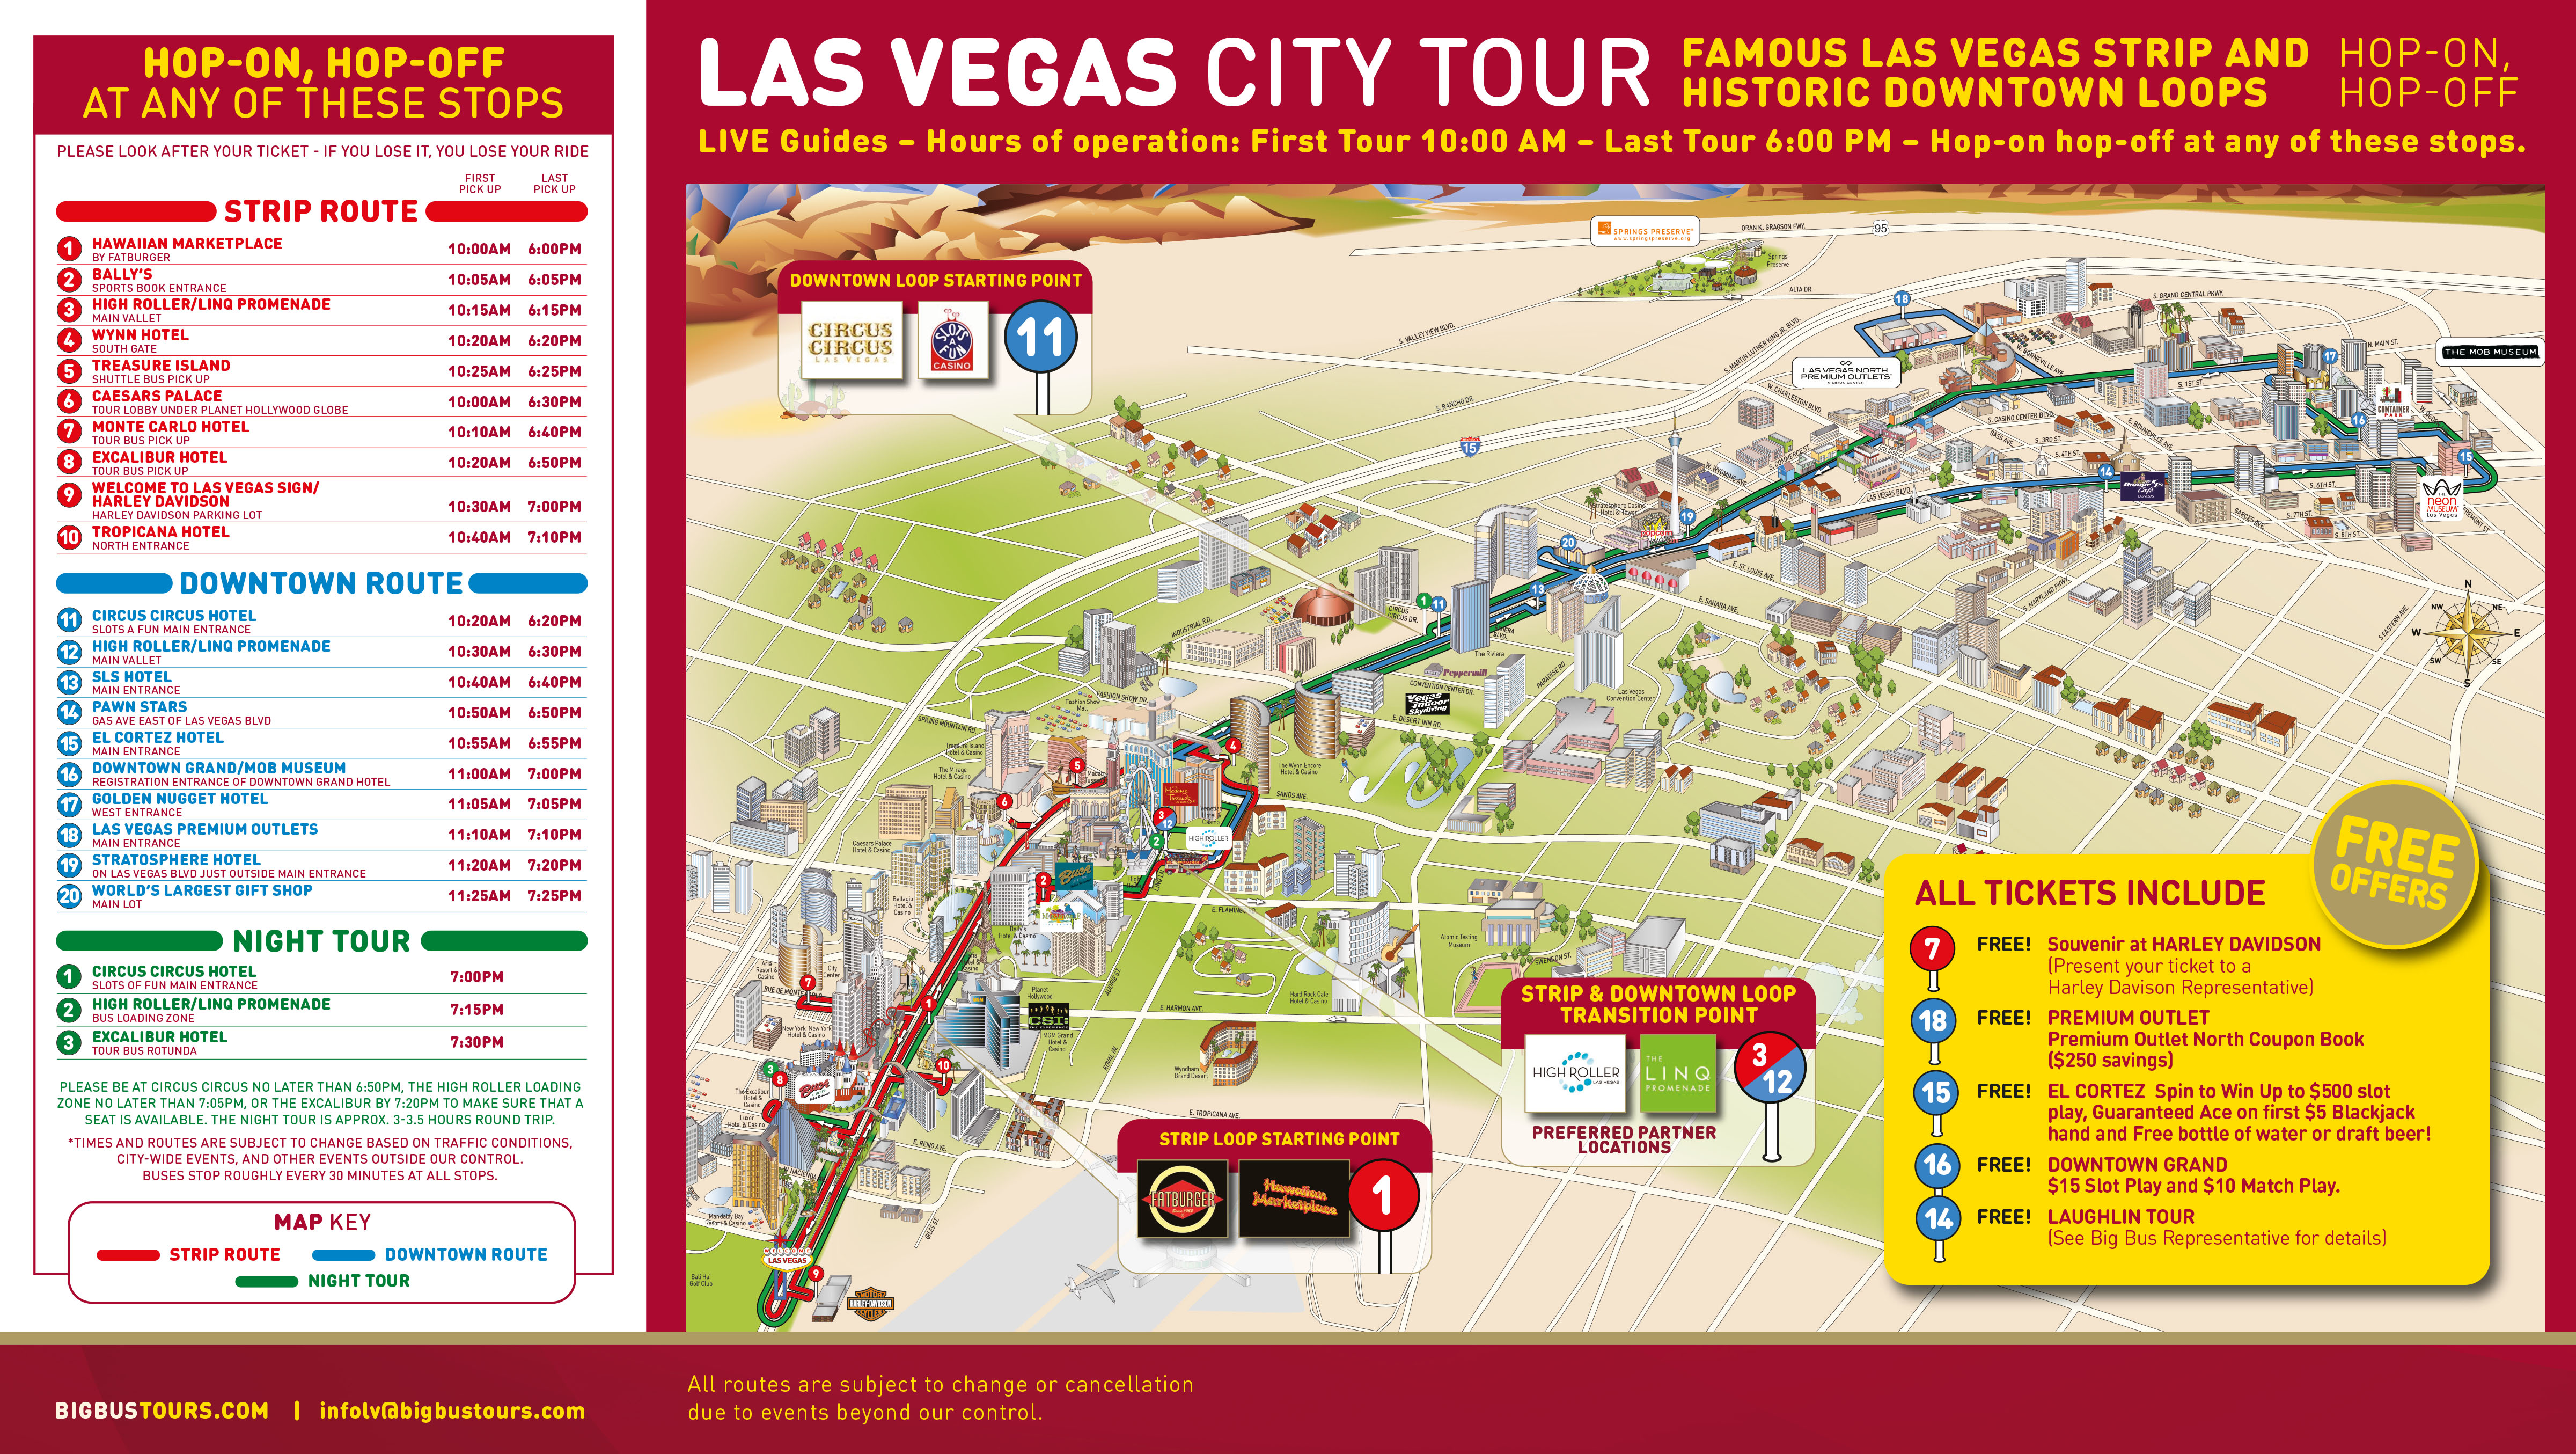 Las vegas Attractions Map PDF - FREE Printable Tourist Map ... on disneyland monorail route map, las vegas hotel map, las vegas attractions detailed map, dallas area rapid transit route map, las vegas walking map, las vegas sign, las vegas maps printable, bally's las vegas site map, fremont street las vegas map, miami monorail route map, las vegas transit map, bay area rapid transit route map, old downtown vegas map, las vegas downtown map, inside aria hotel map, new york city subway route map, vegas strip map, cosmopolitan las vegas map,